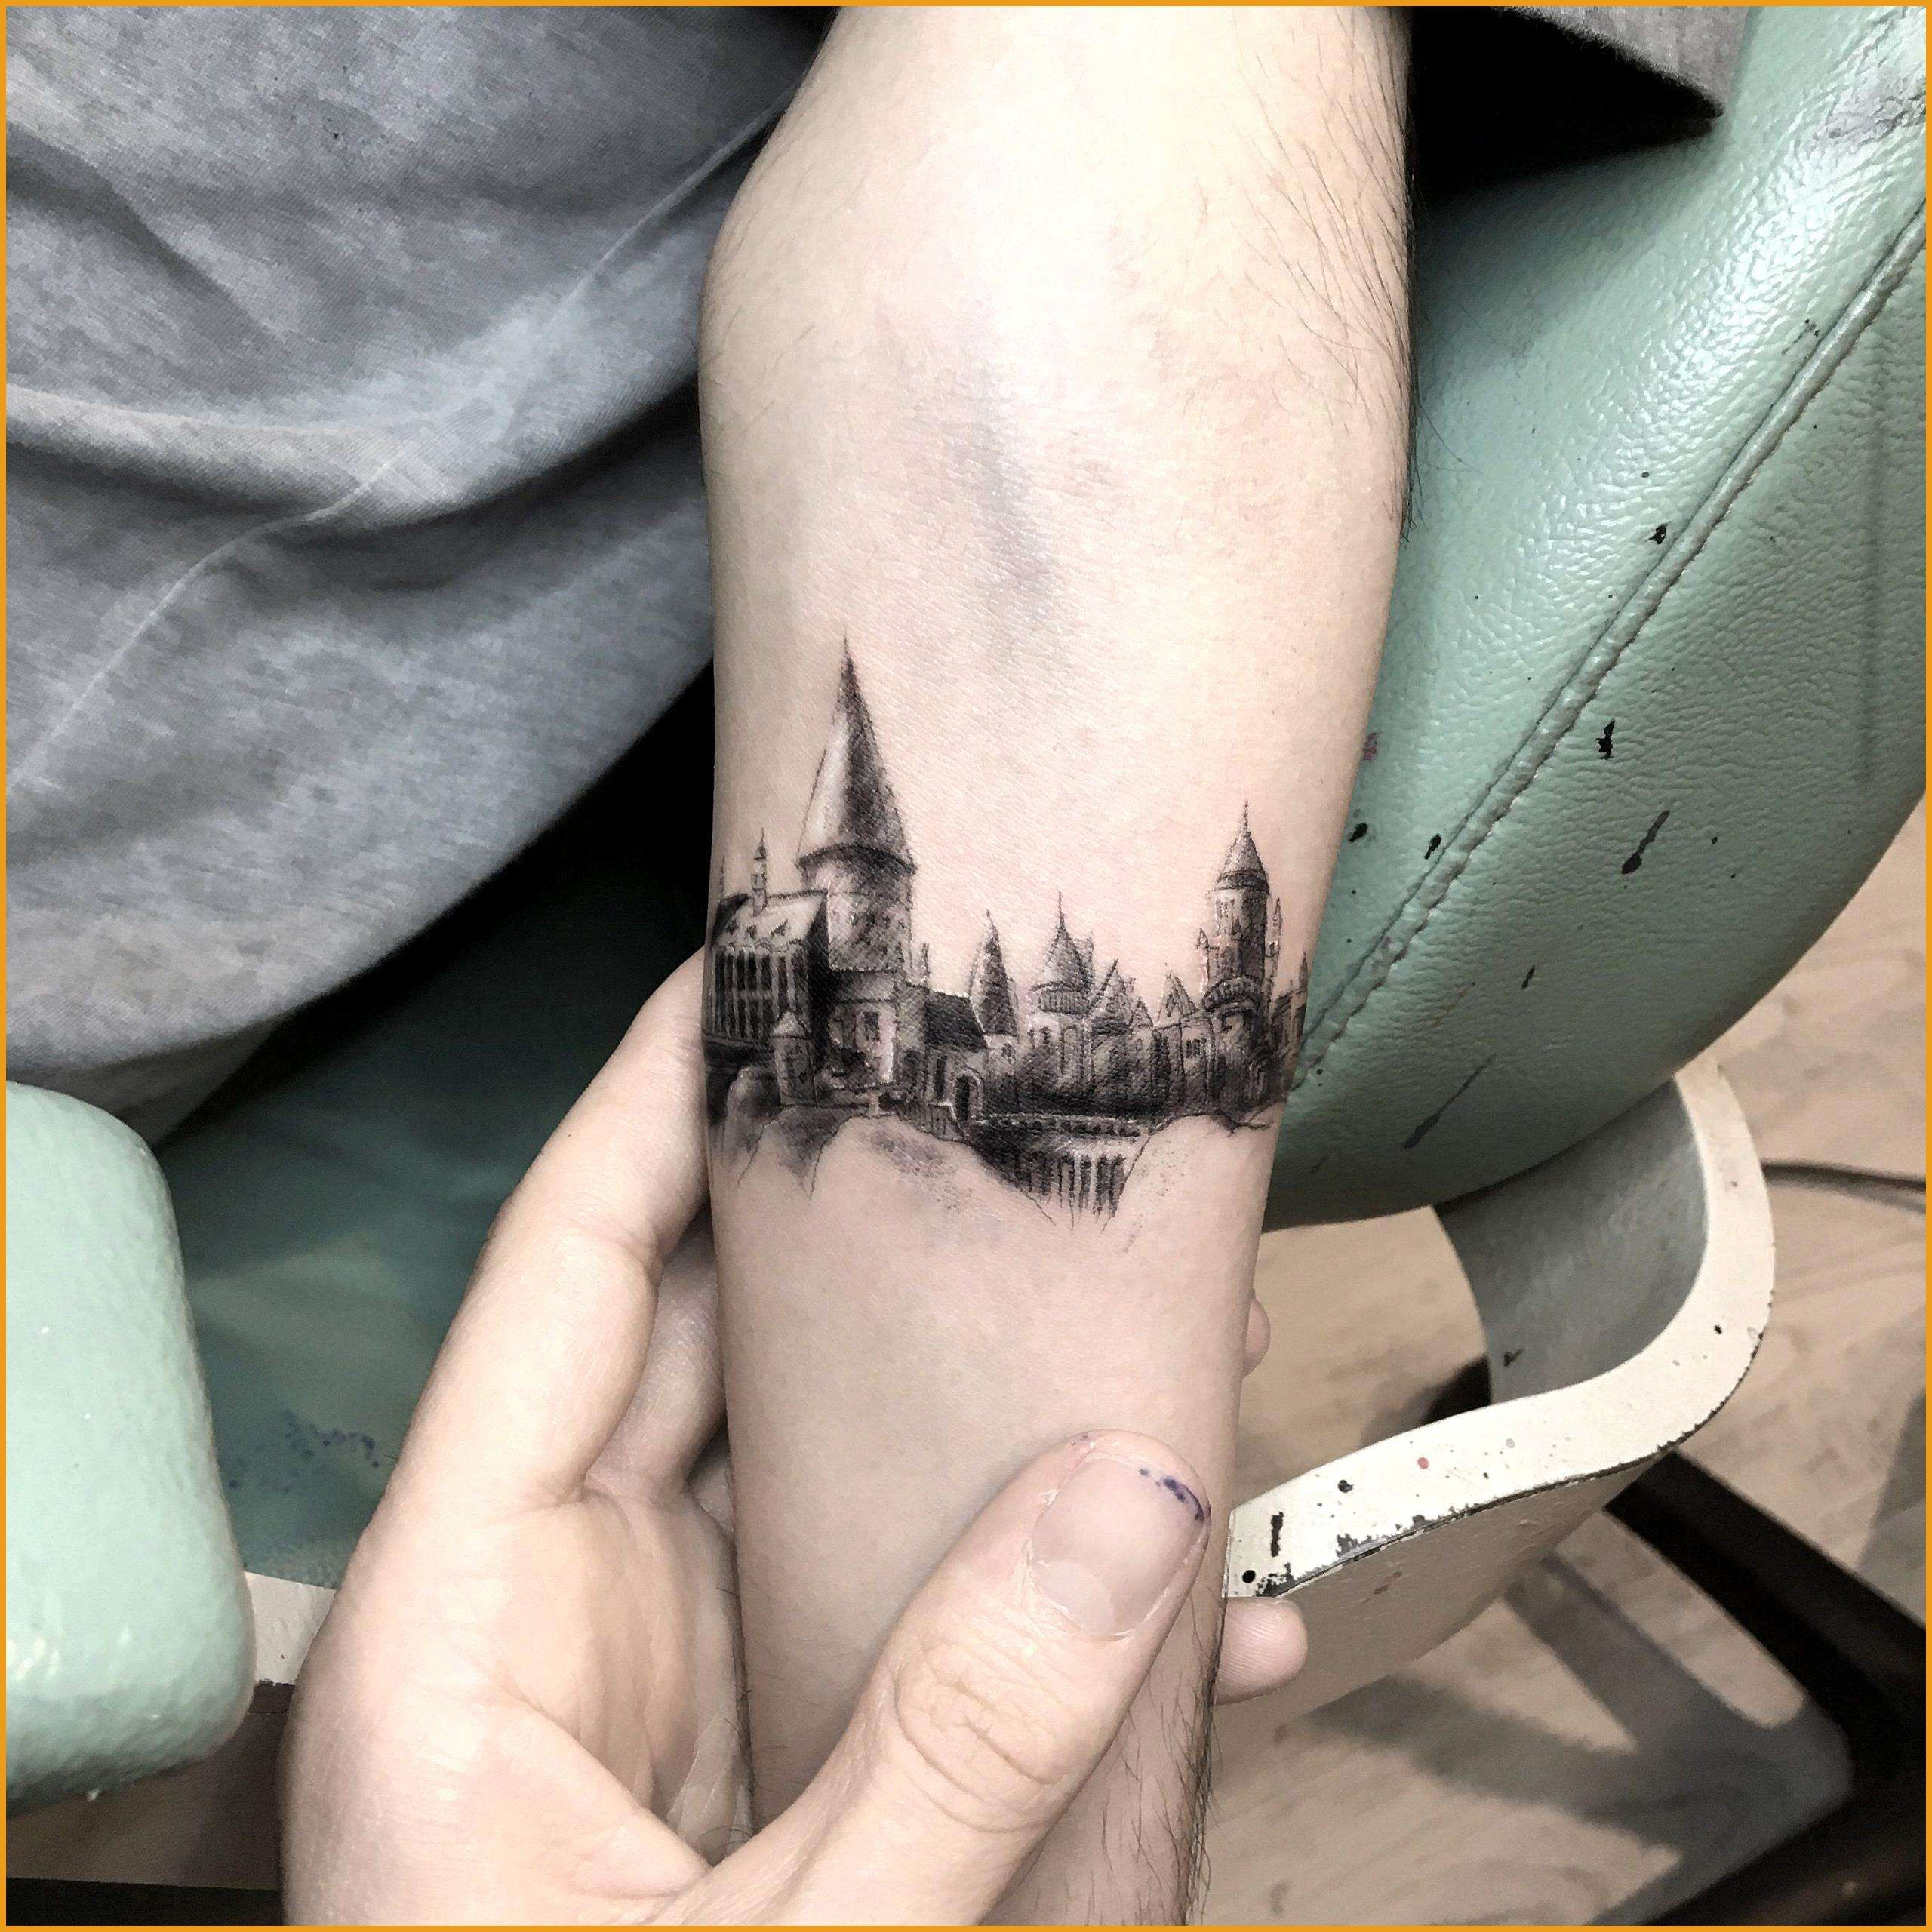 Hogwarts Tatowierung Harry Potter Tatowierung Hogwarts Tatowierung Harry Potter Tatowierung Hogwarts Tattoo Harry Potter Tattoos Harry Potter Tattoo Small